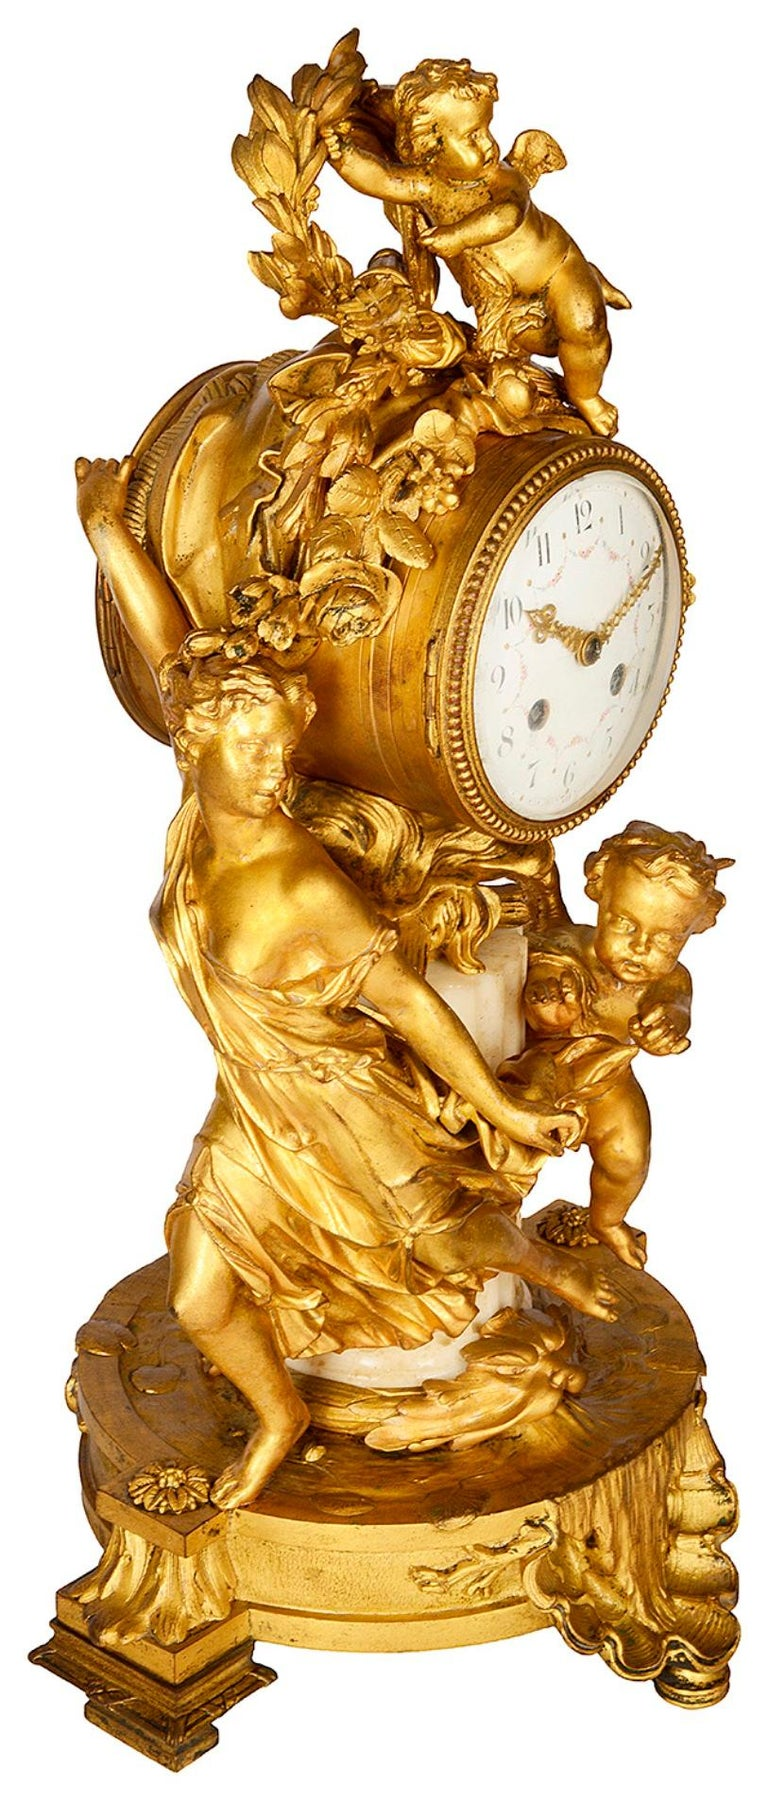 An enchanting late 19th century French gilded ormolu and marble mantel clock, depicting cherubs playing, one chasing a young girl, the other hiding amongst a wreath and foliage. The enamel clock face with an eight day duration, strikes on the hour